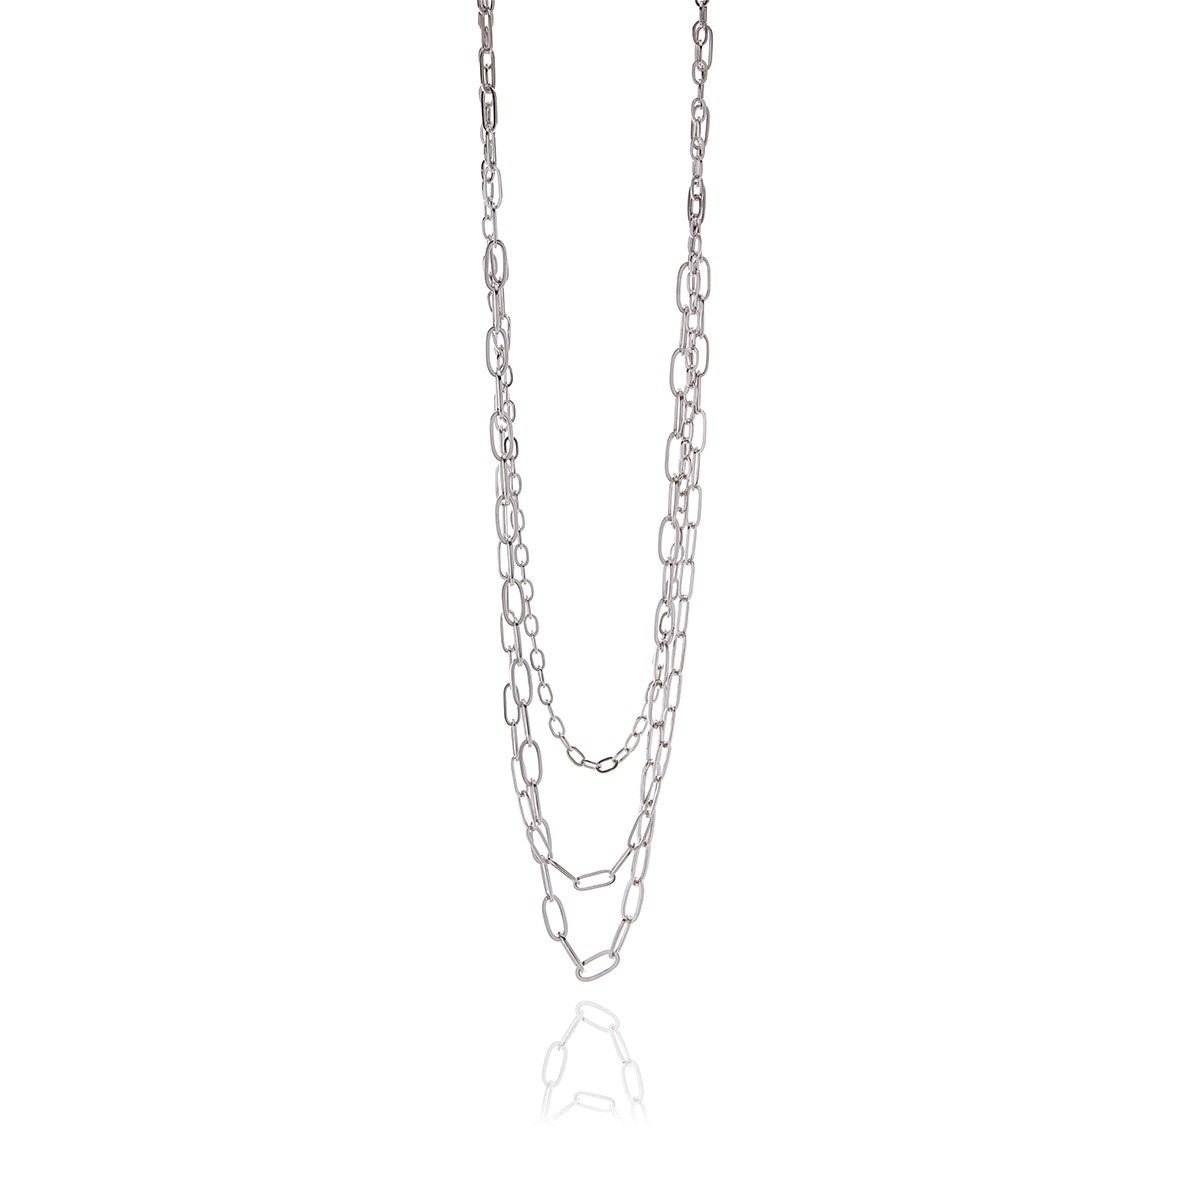 3 in One Long Chain Silver or Gold Necklace - Georgina Jewelry